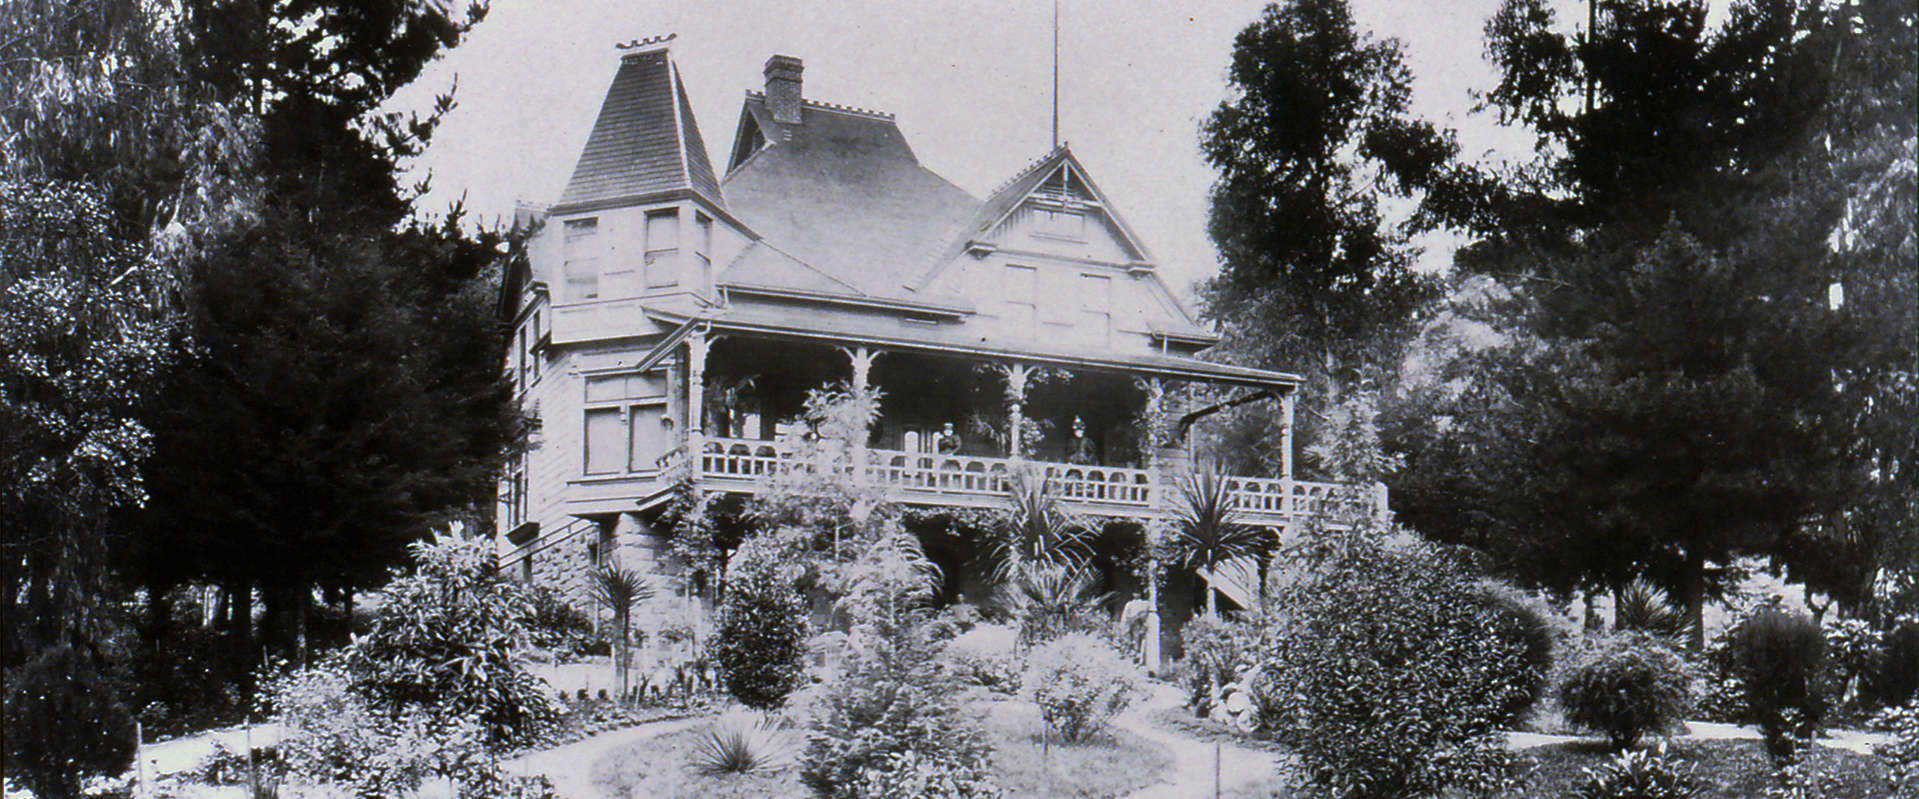 J. Schram Victorian house and formal front gardens, circa 1875